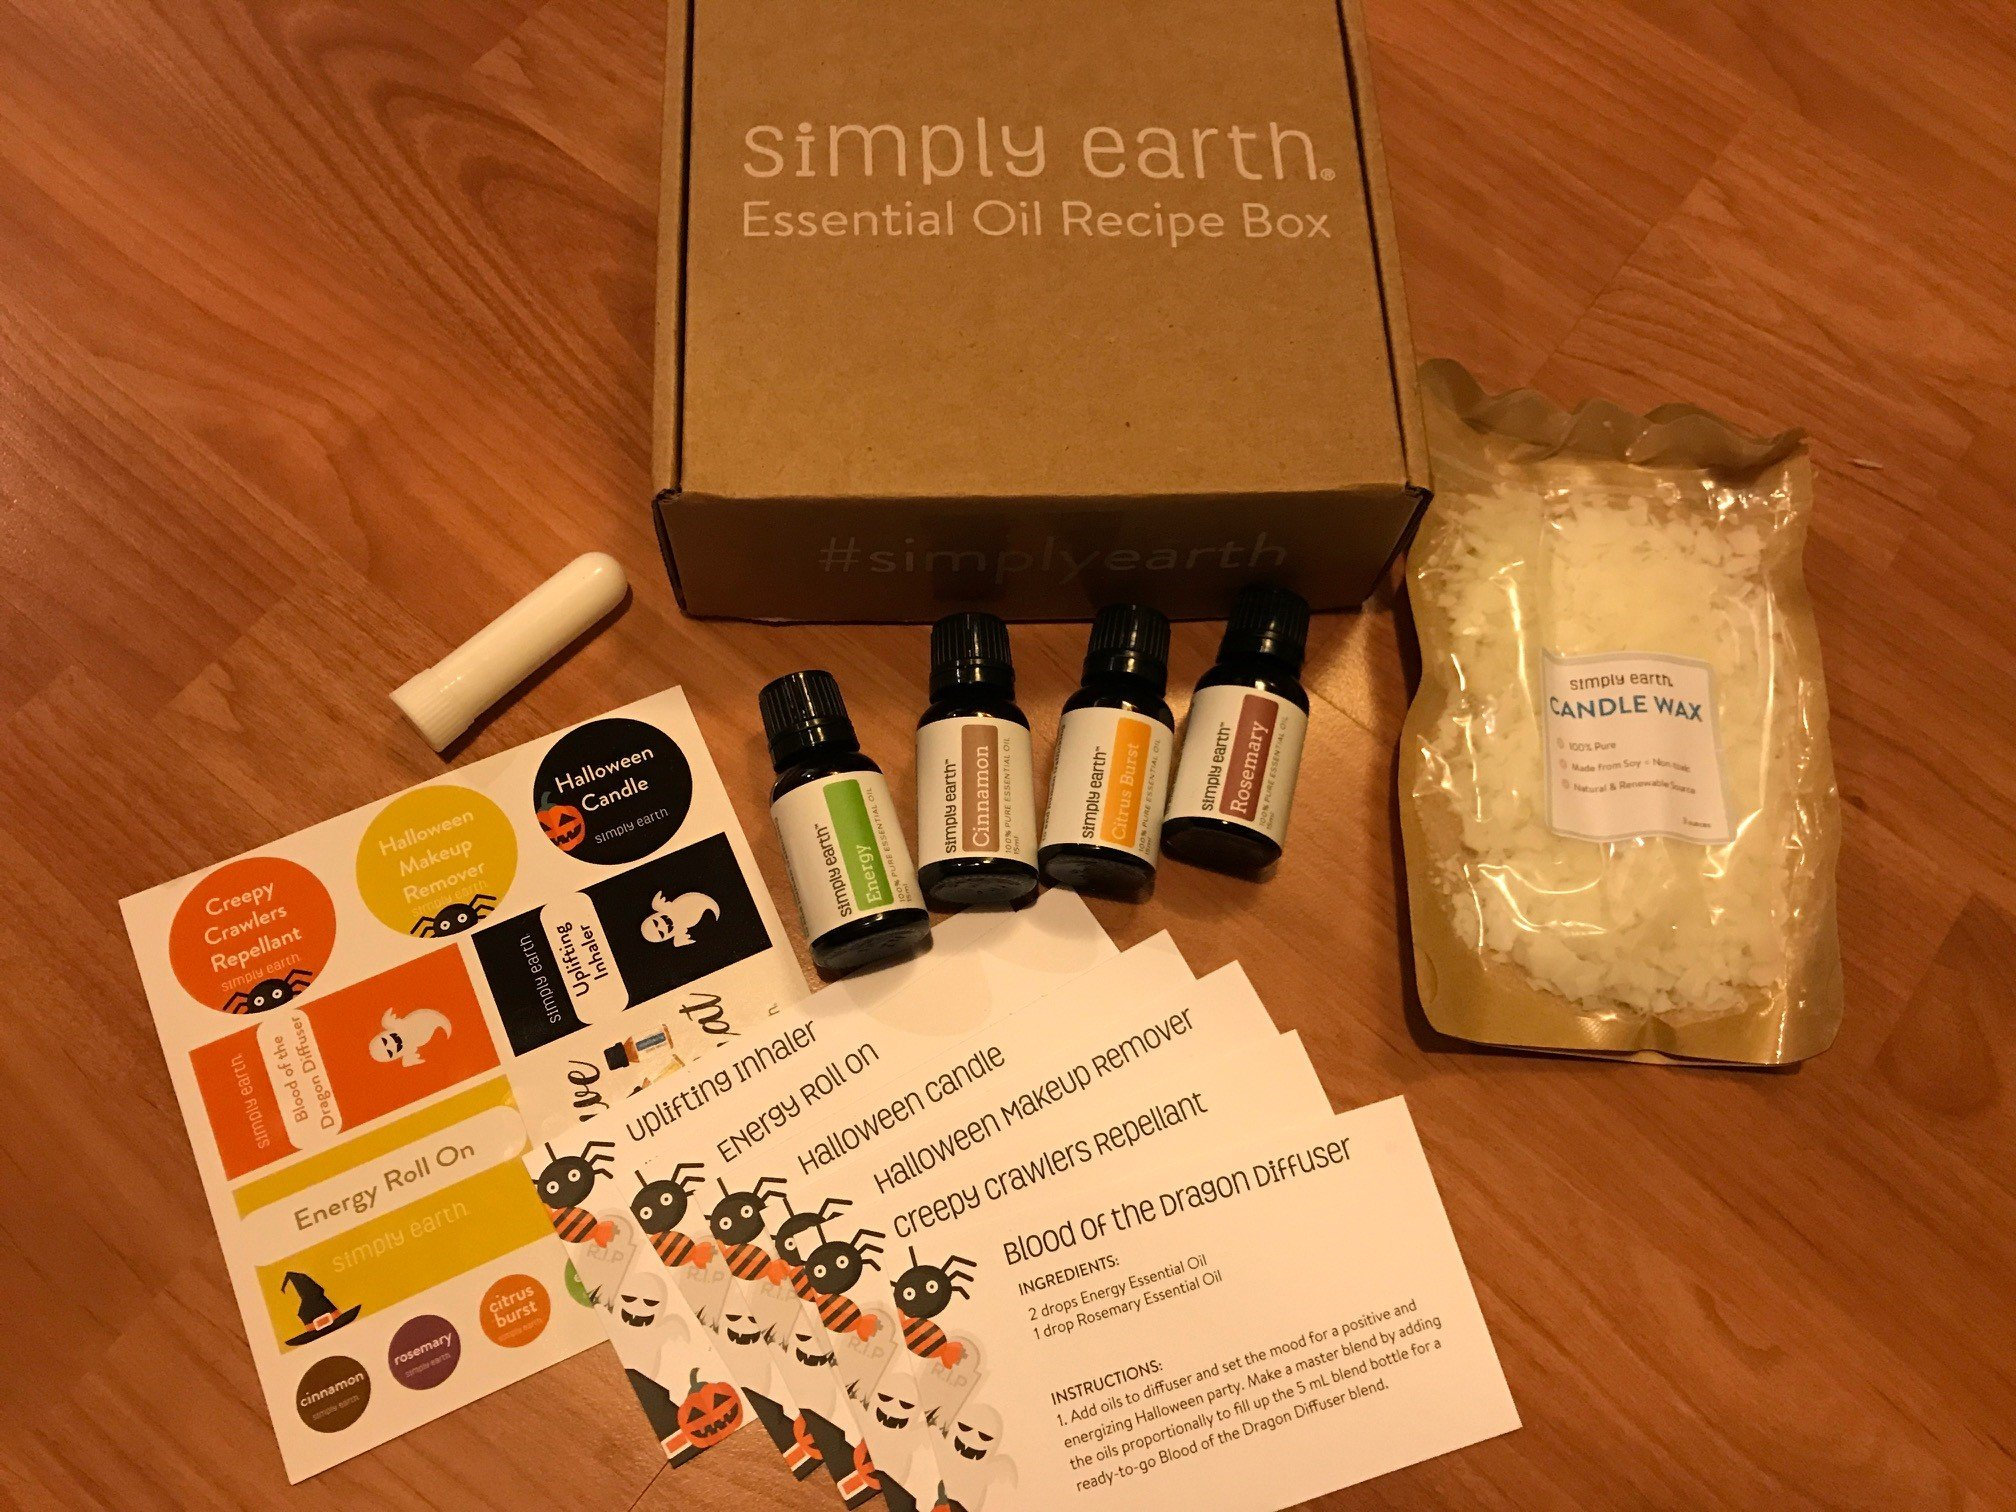 Simply Earth Subscription Box & Essential Oils Quality Review